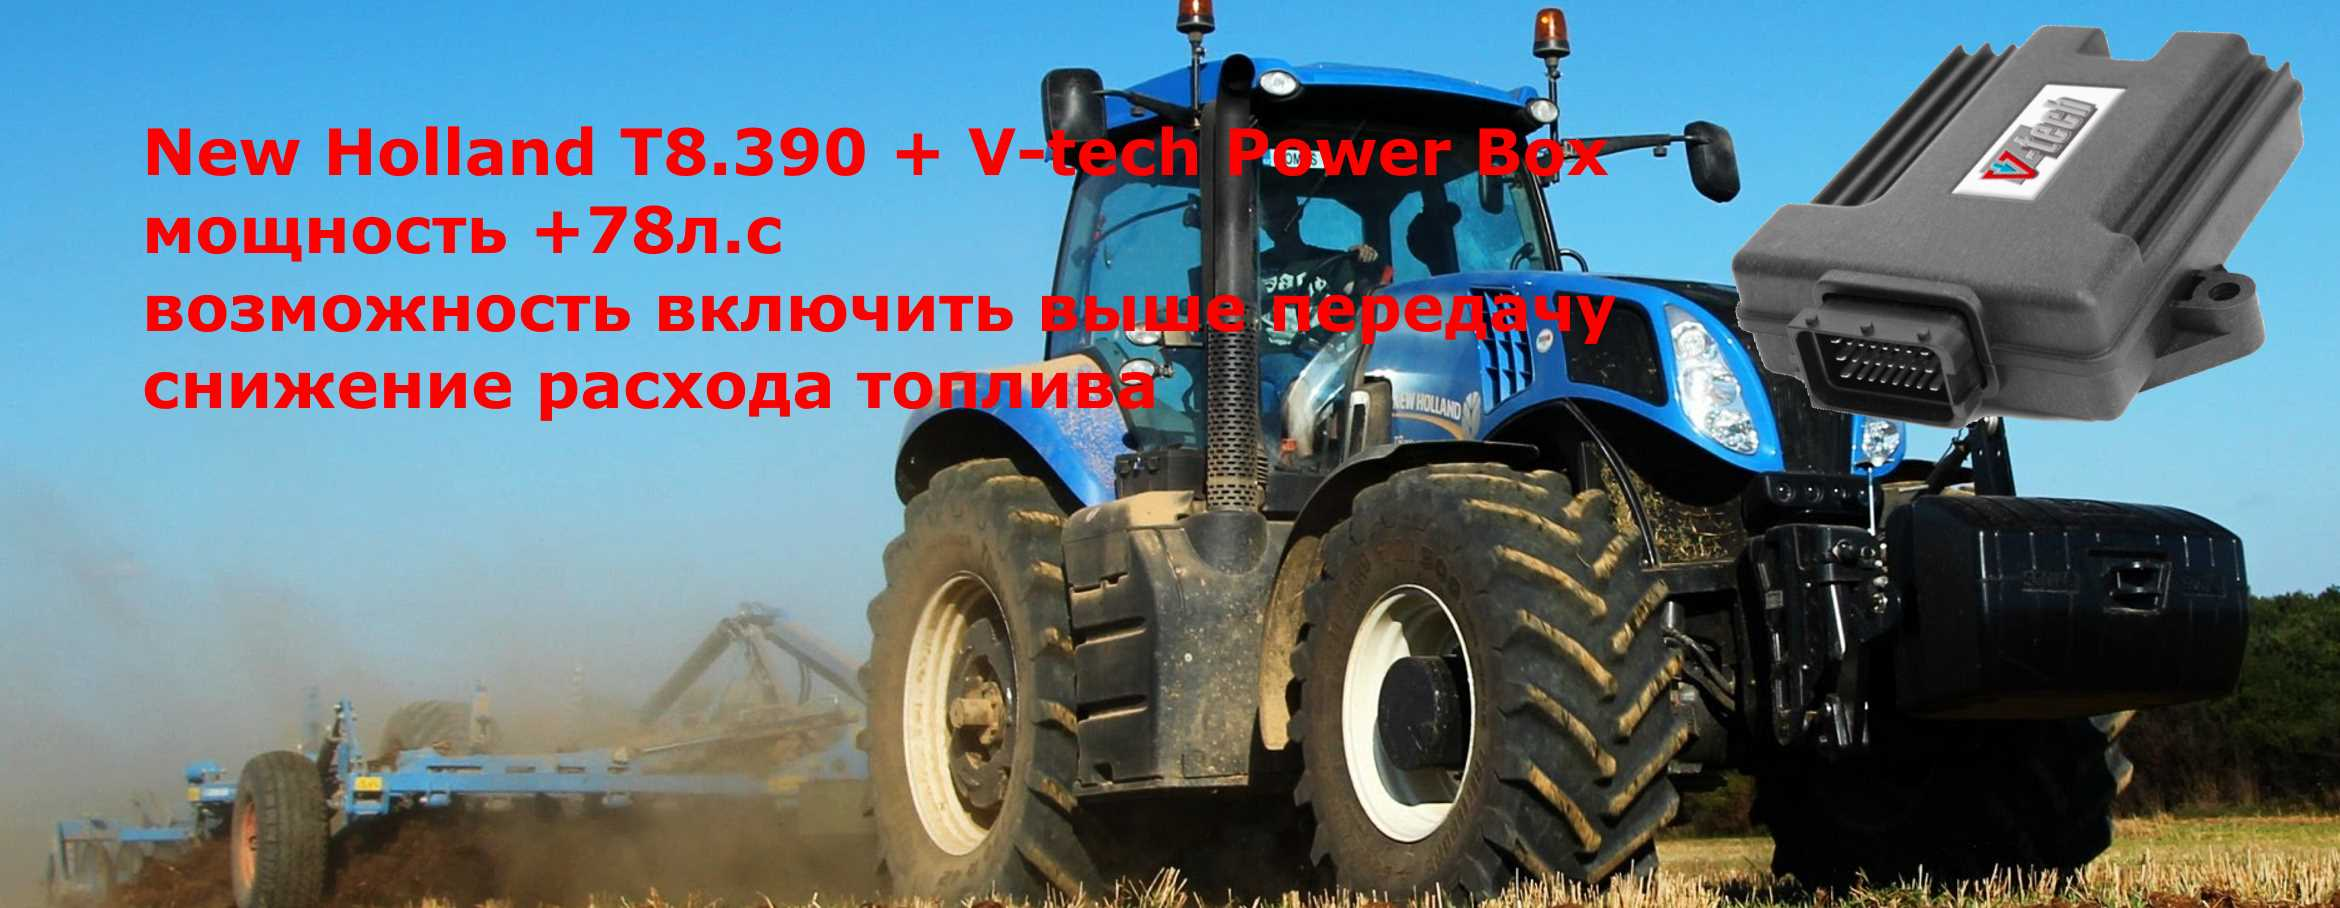 чип тюнинг new holland t8.390